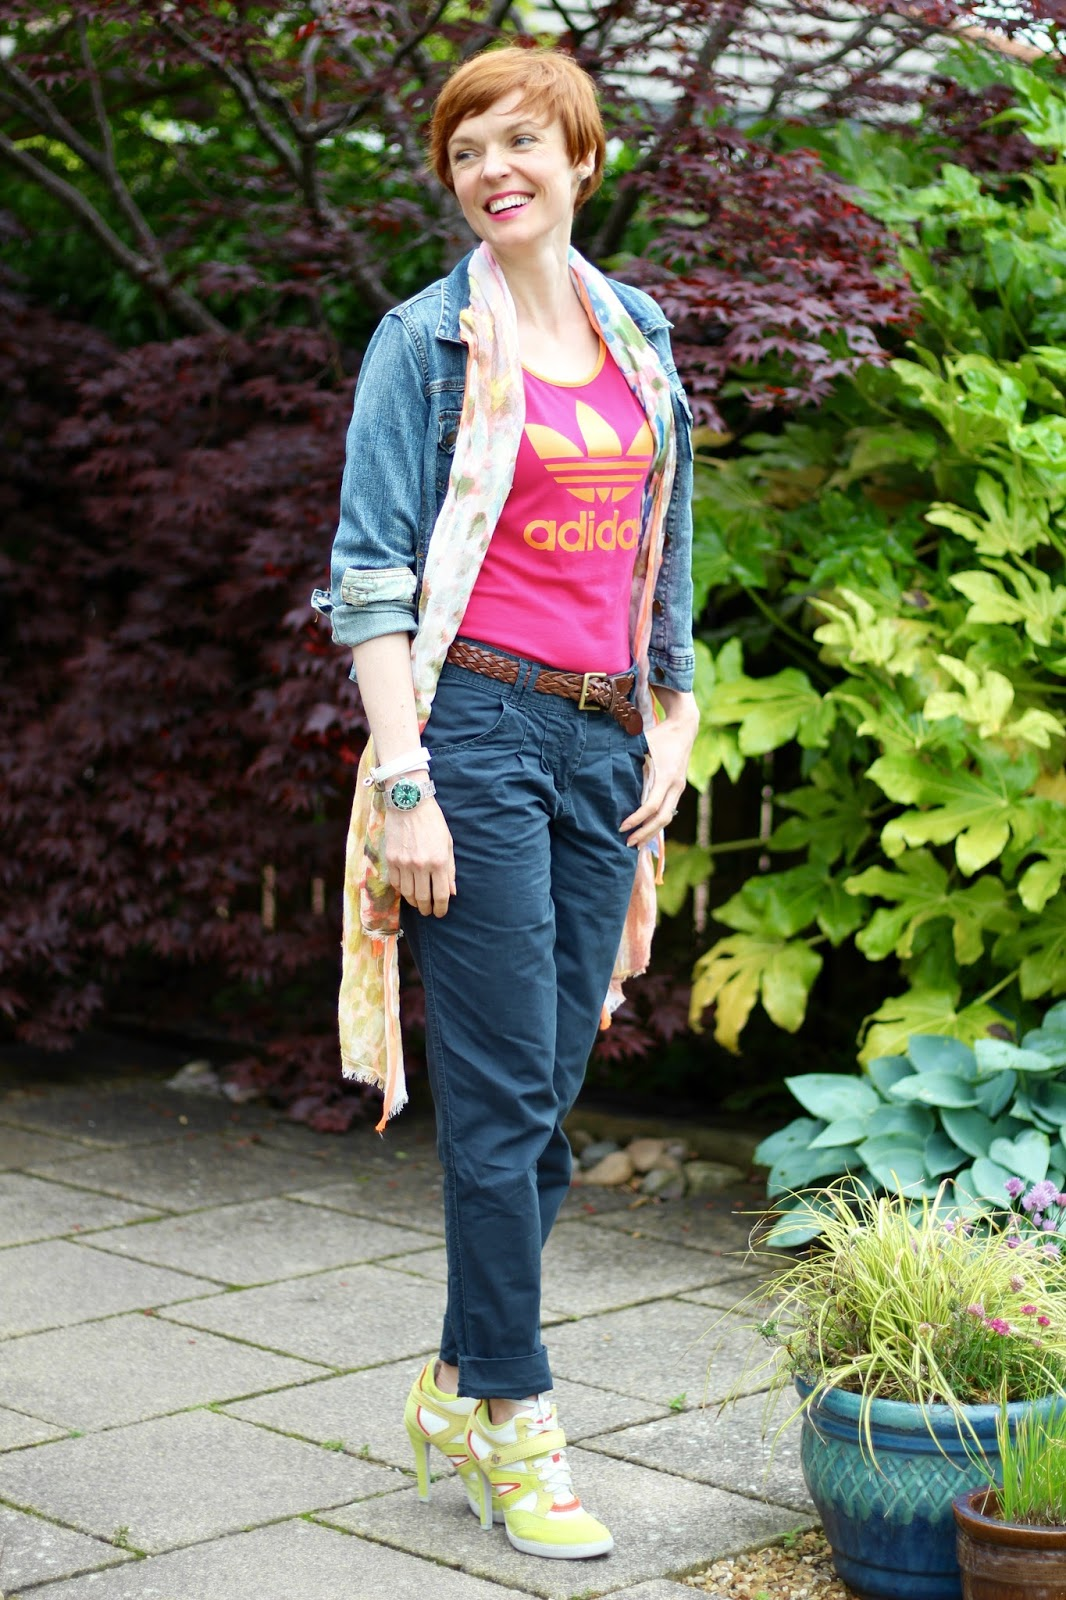 Fake Fabulous | Sports chic. Adidas vest top, Denim Jacket, navy chinos, stiletto trainers, pink and orange